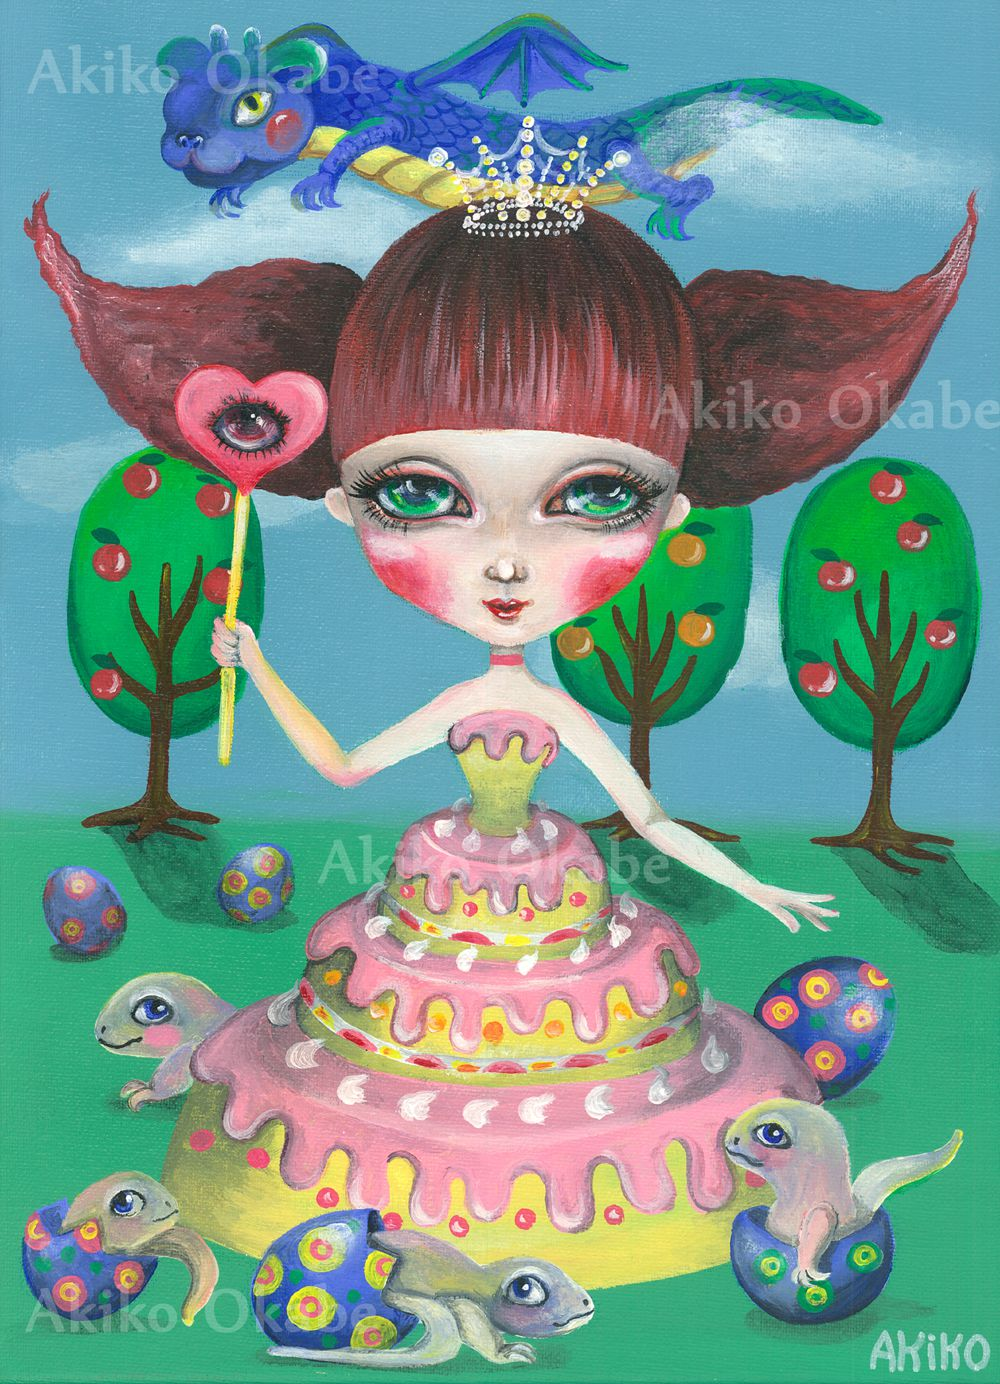 girl birthday sweets cake gift monster popsurrealism